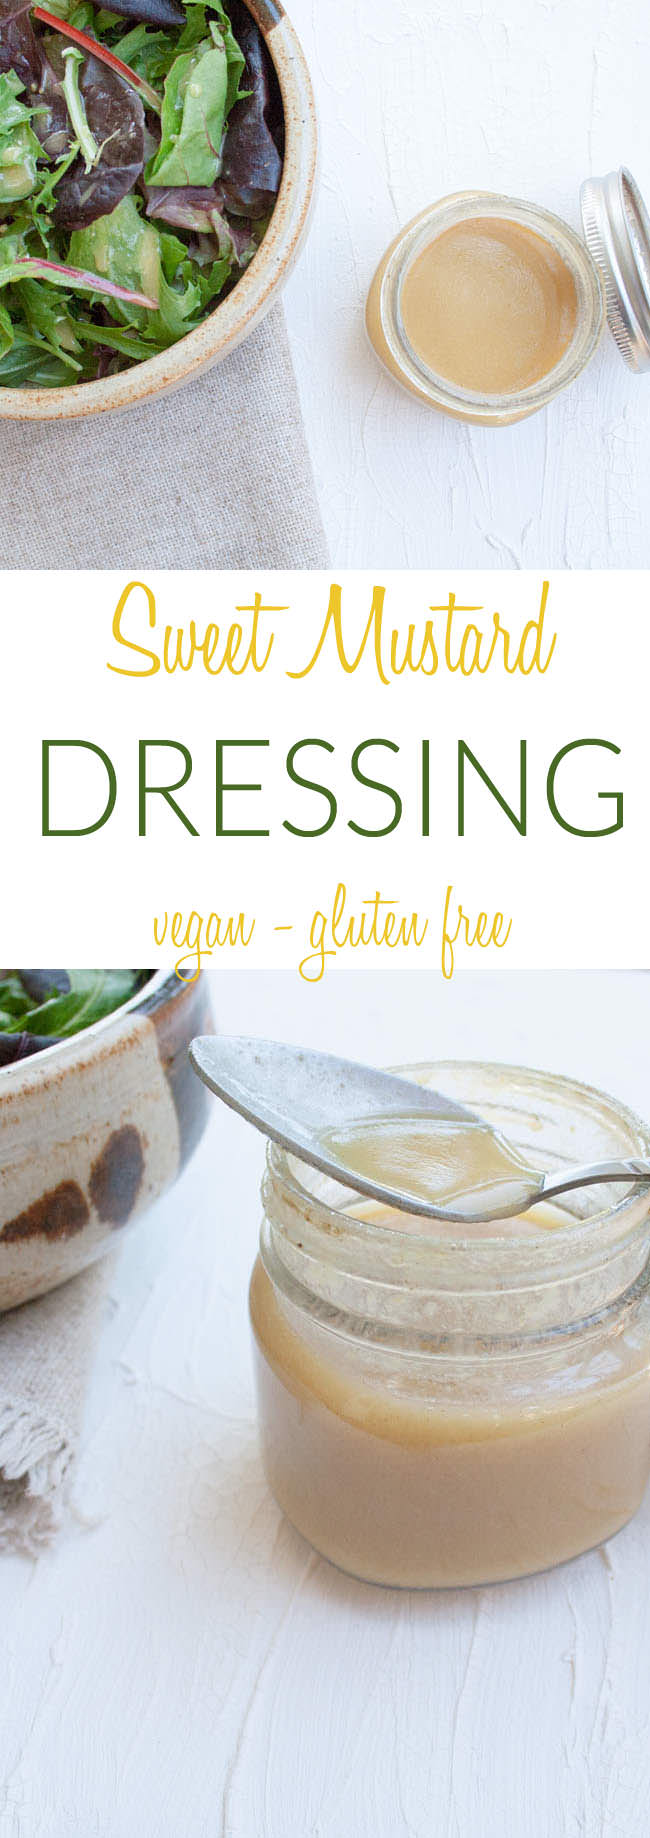 Sweet Mustard Dressing collage photo with text.